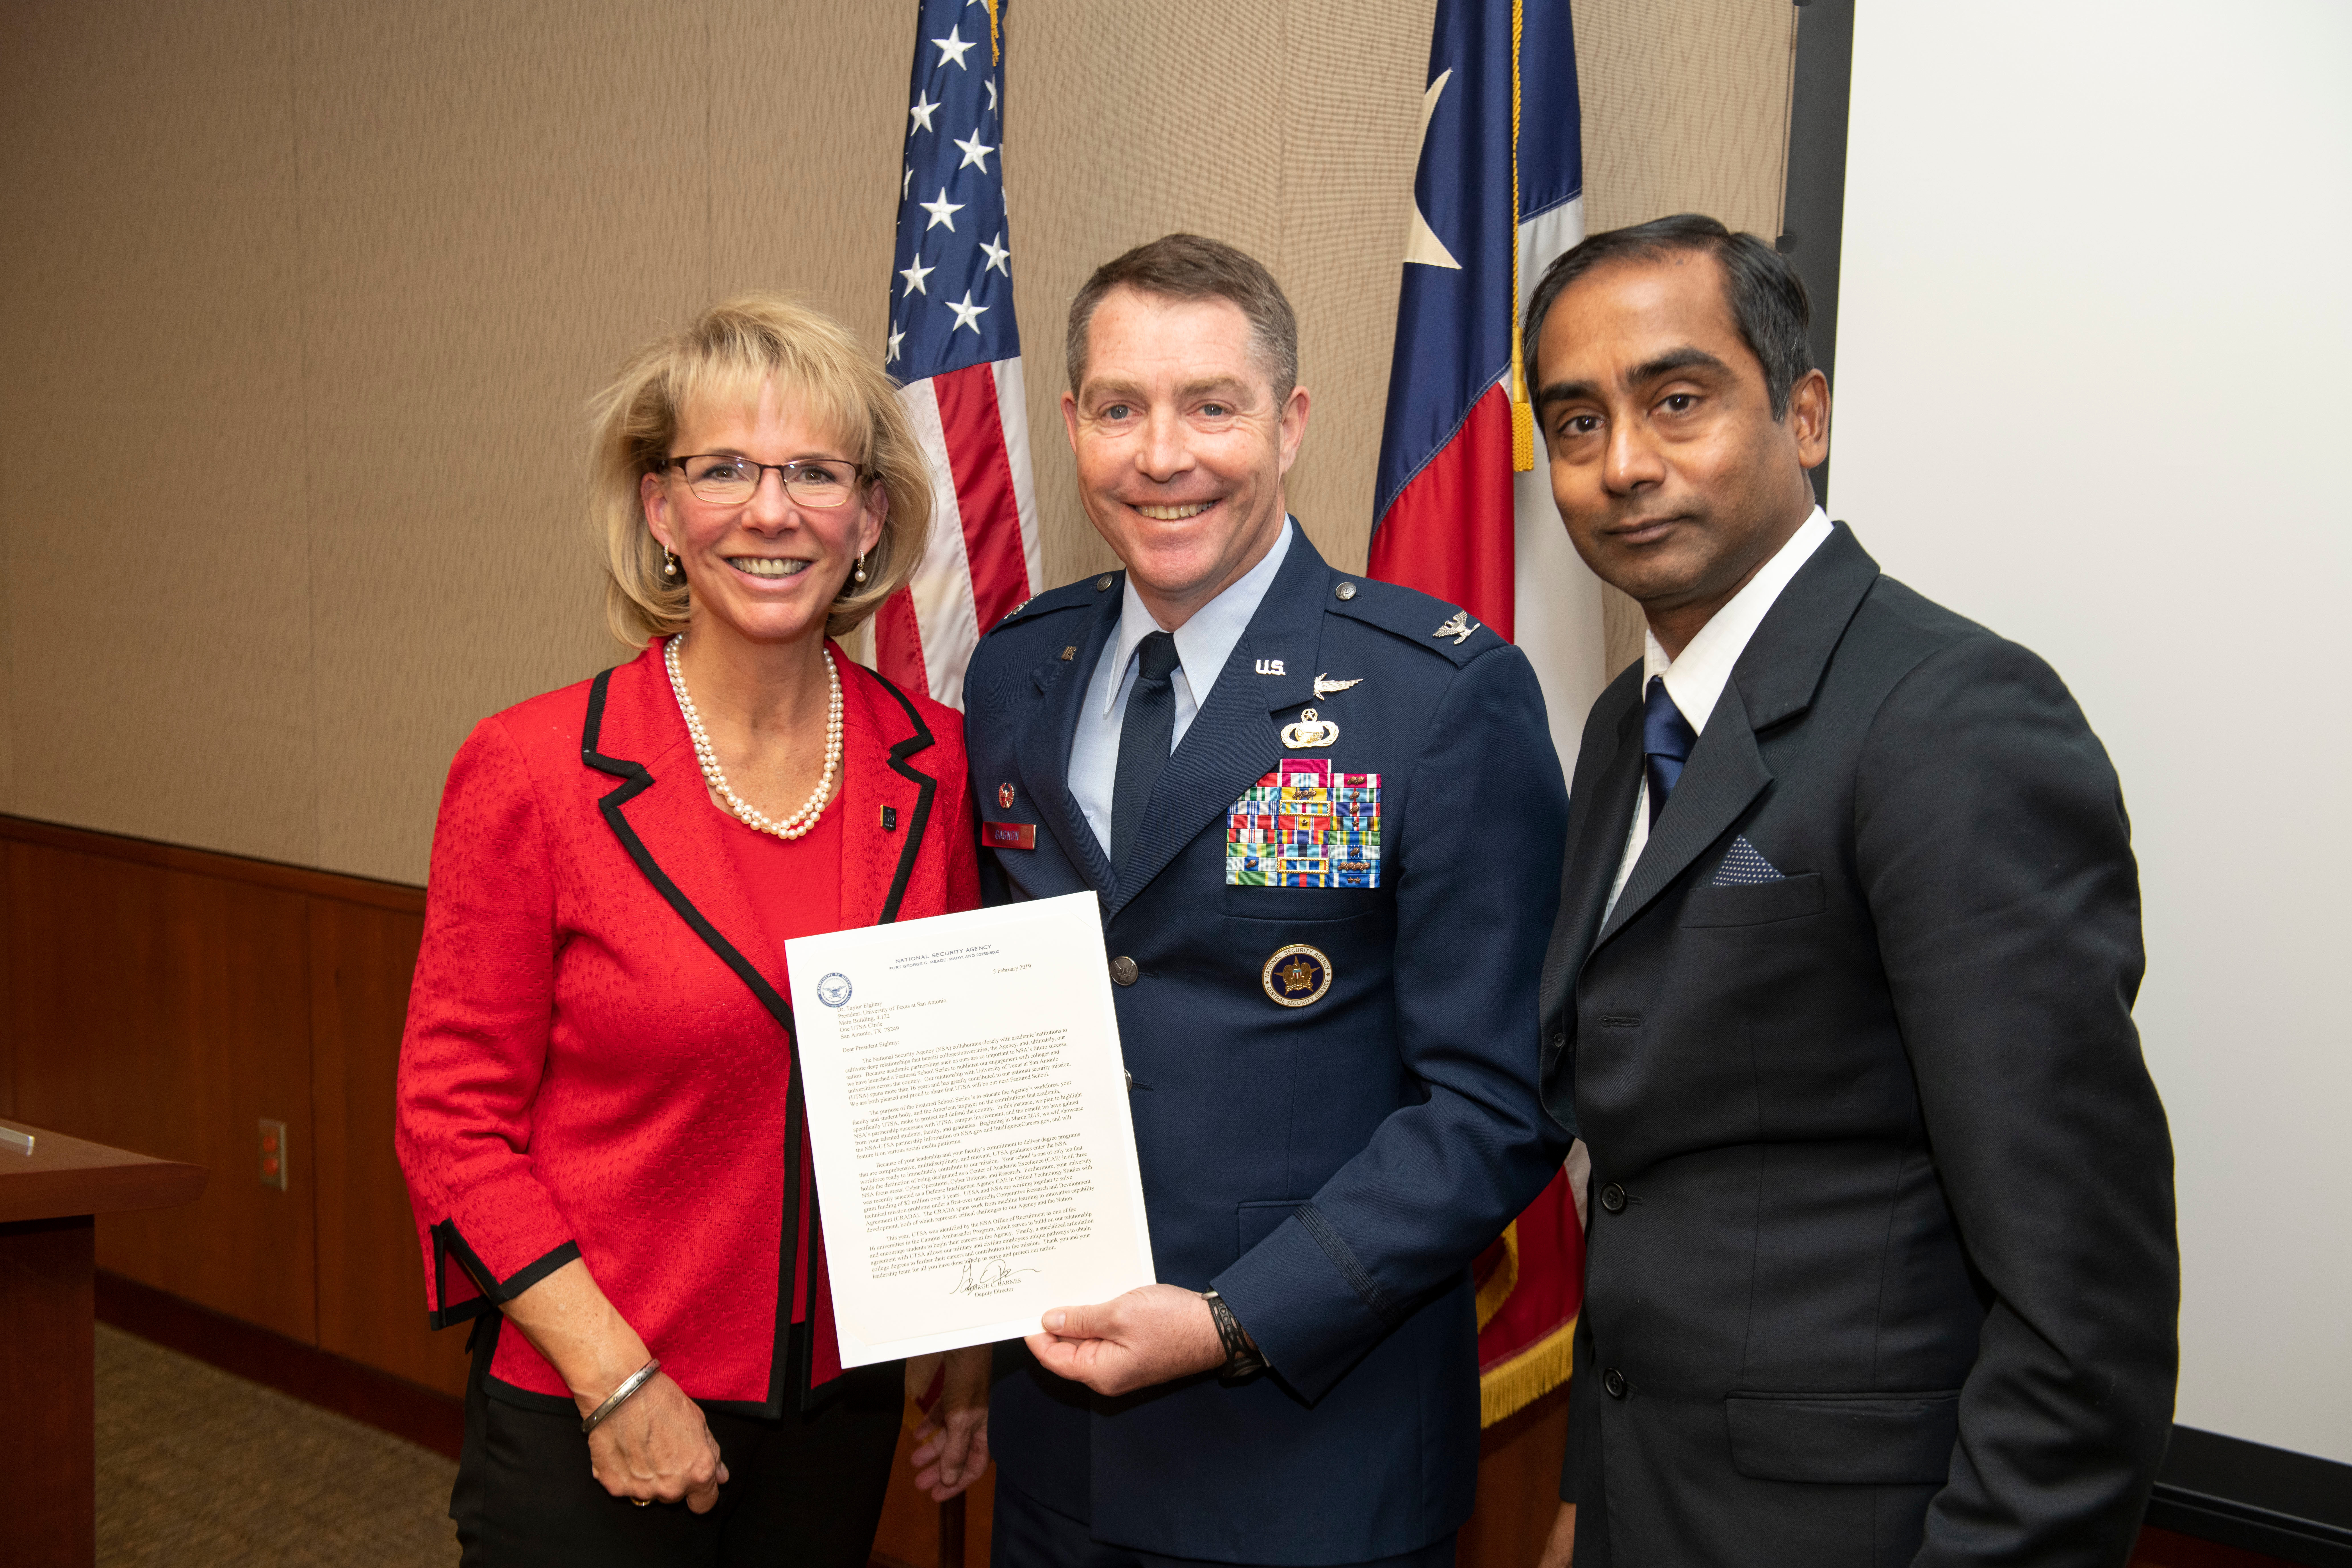 nsa and utsa: partnering to meet cybersecurity challenges